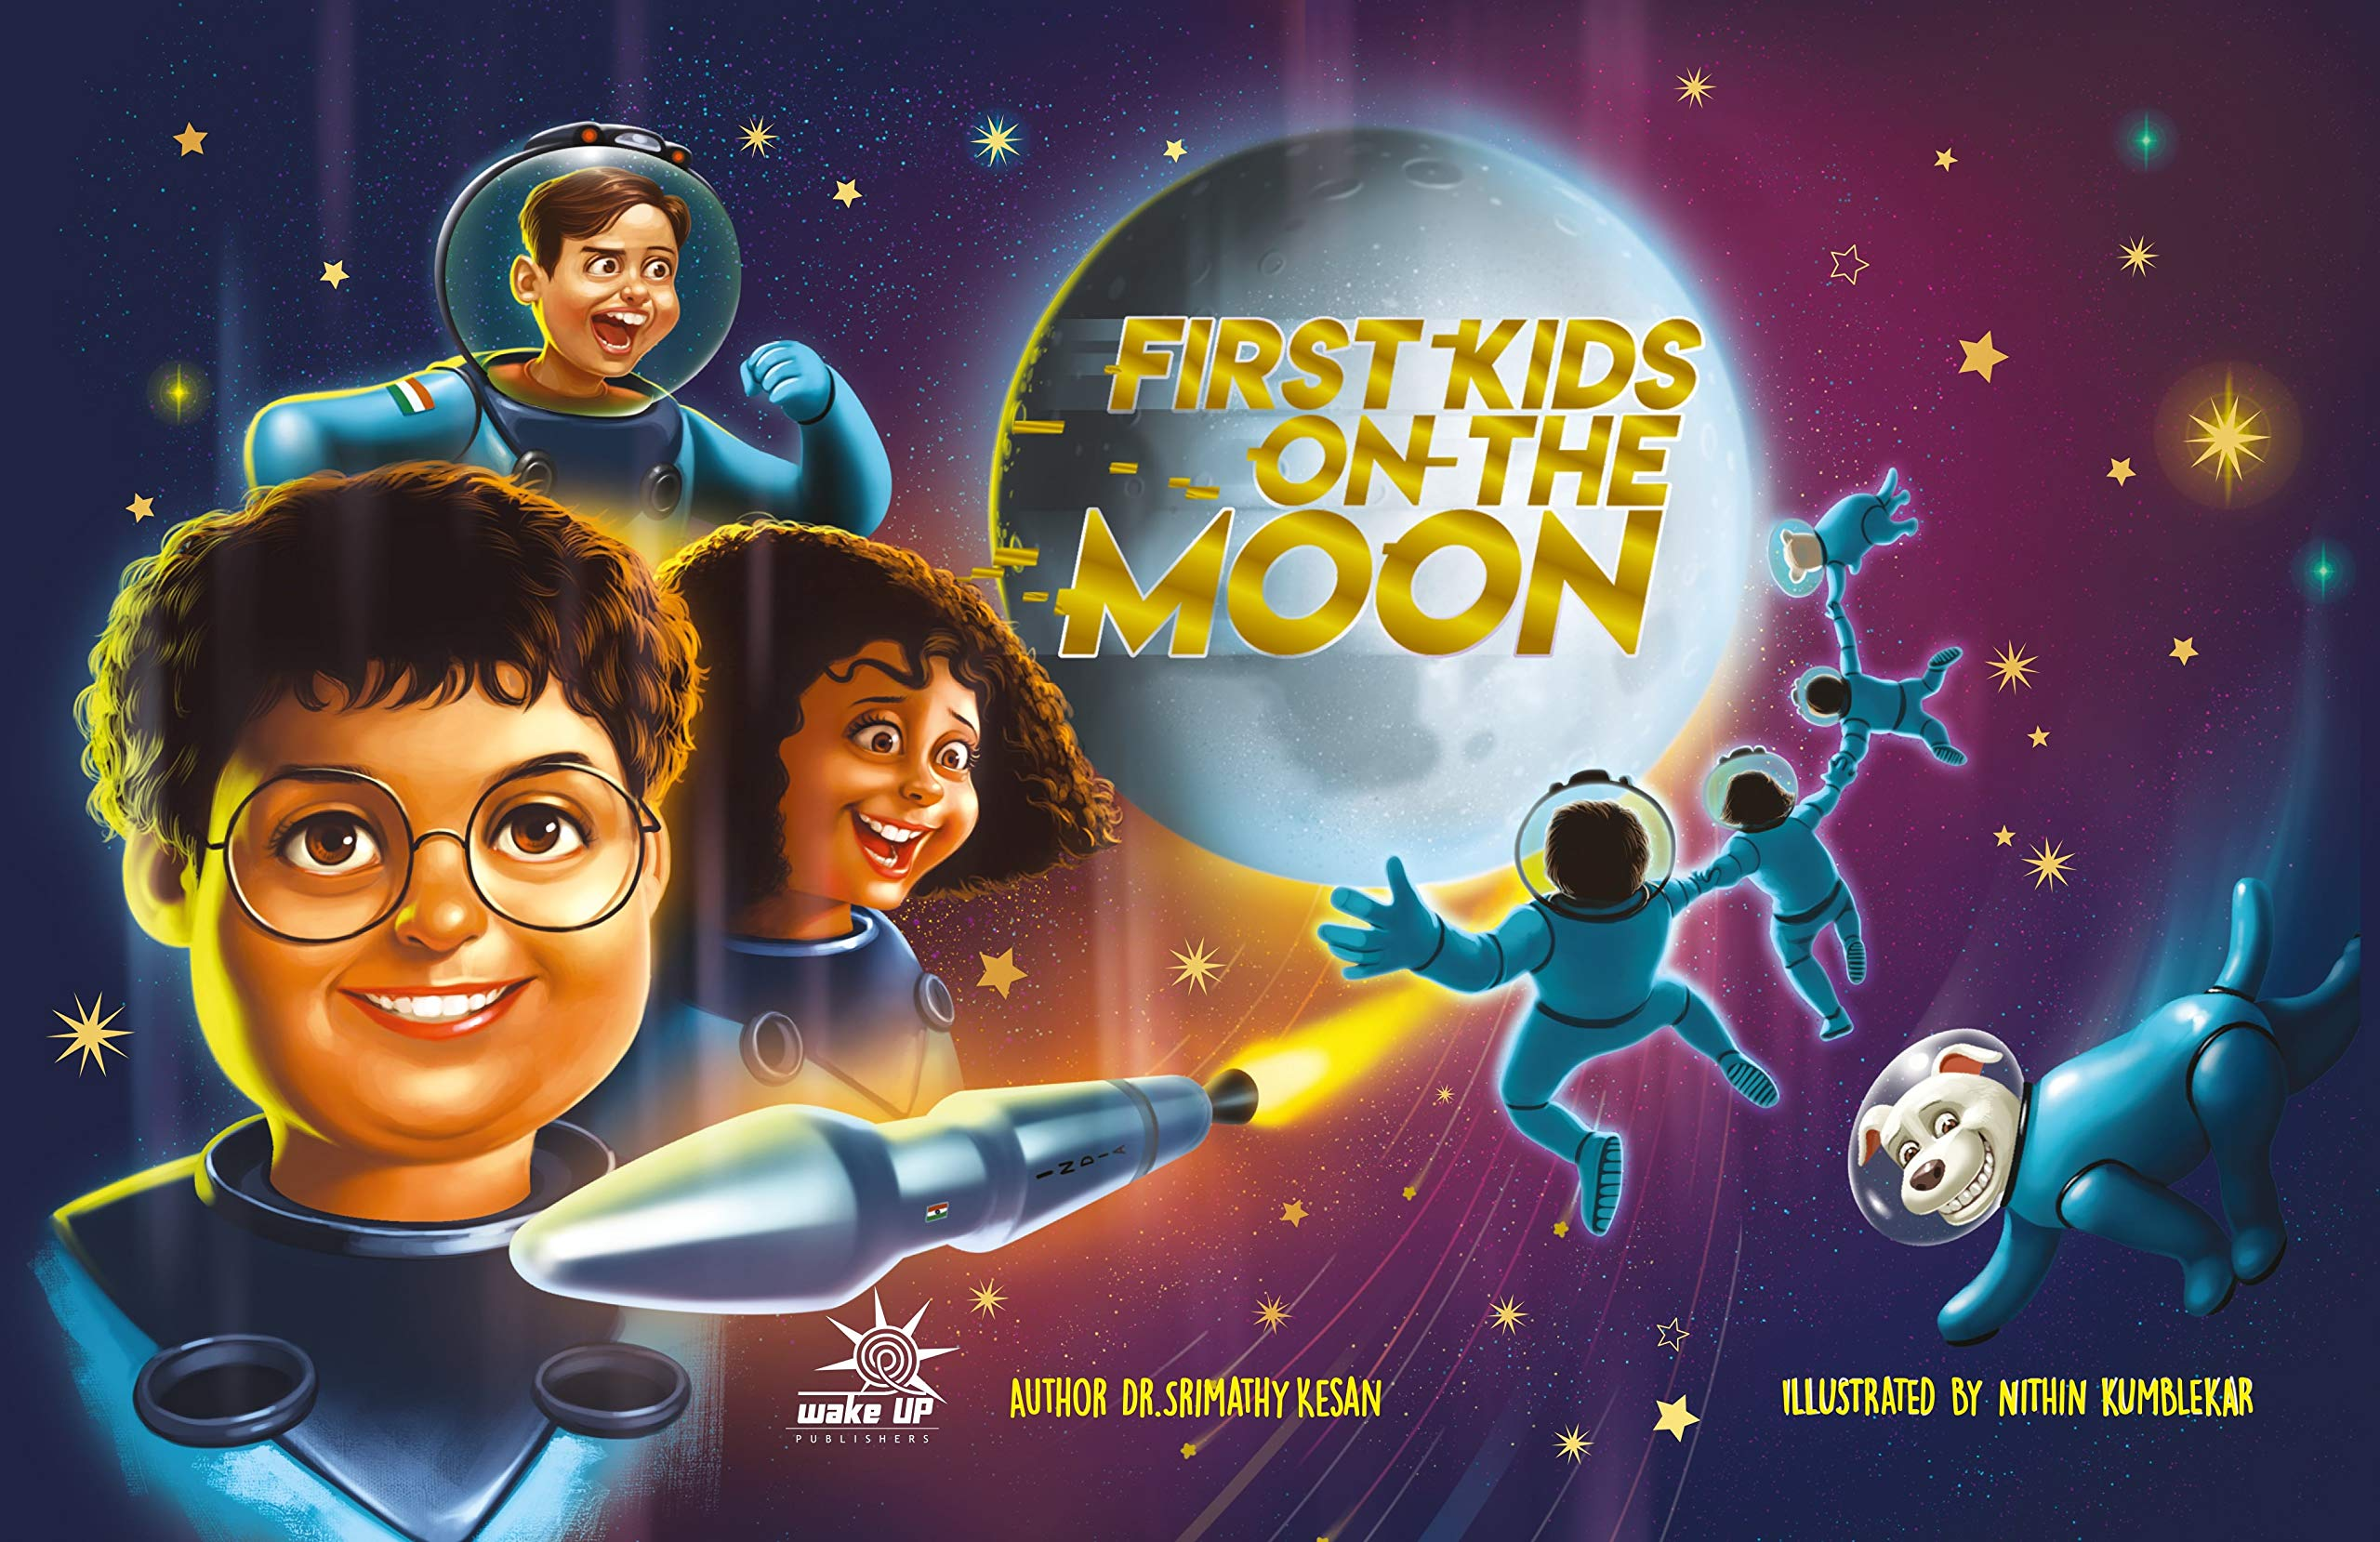 Wake Up - First Kids on the  Moon